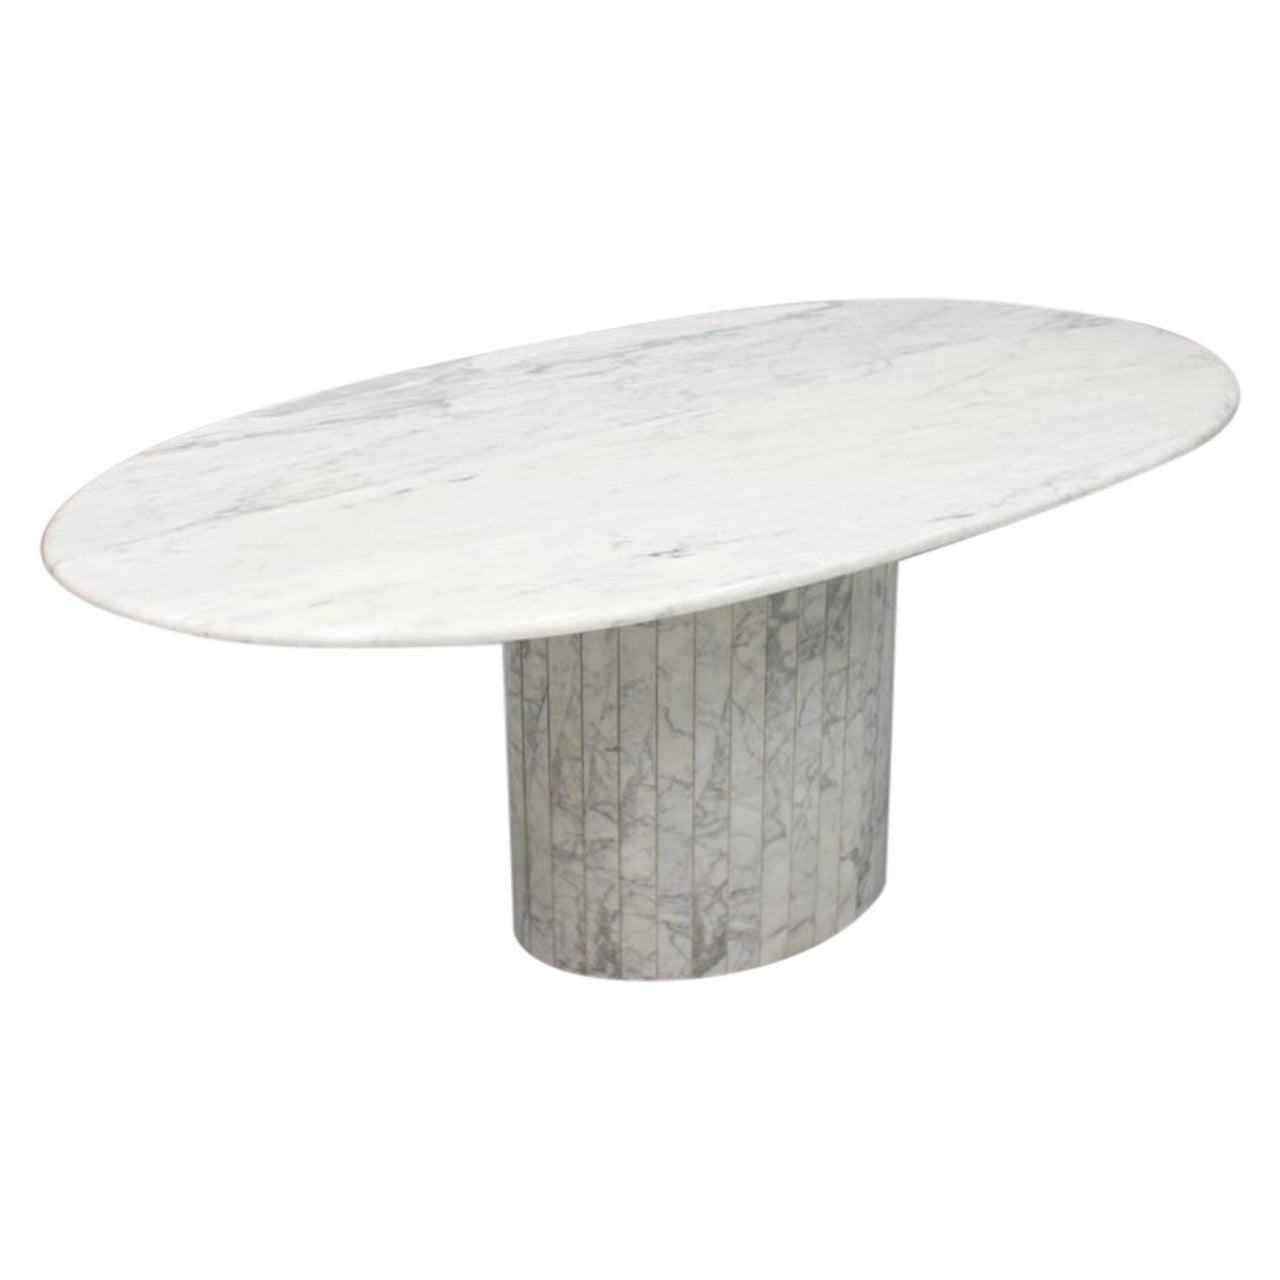 Oval Dining Table in White Carrara Marble, Italy, 1960s